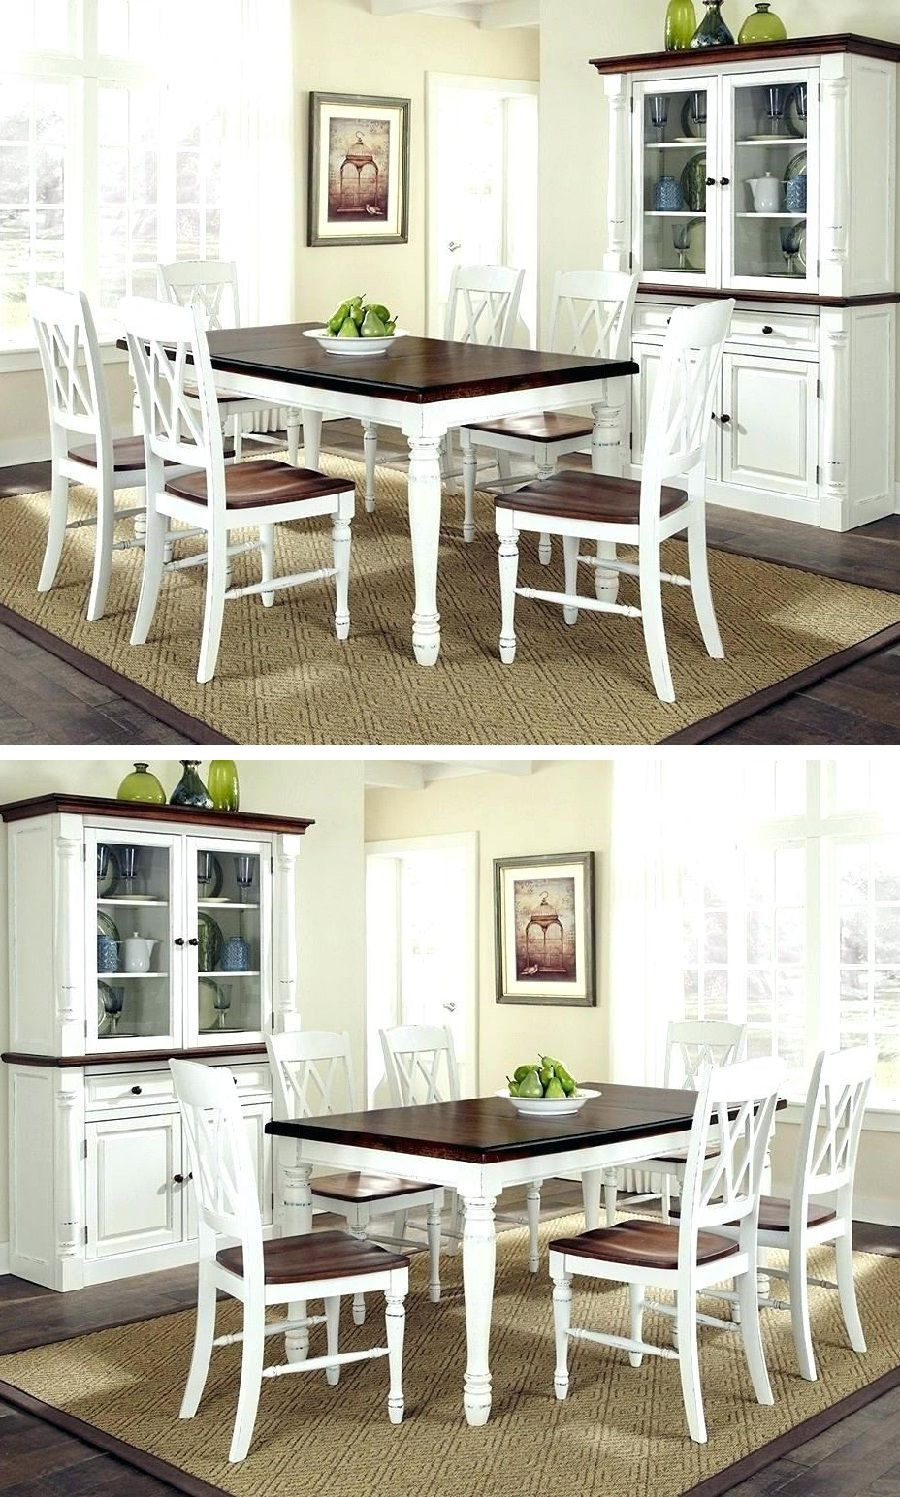 Bobs Furniture Kitchen Sets  Bobs furniture, Furniture, Kitchen